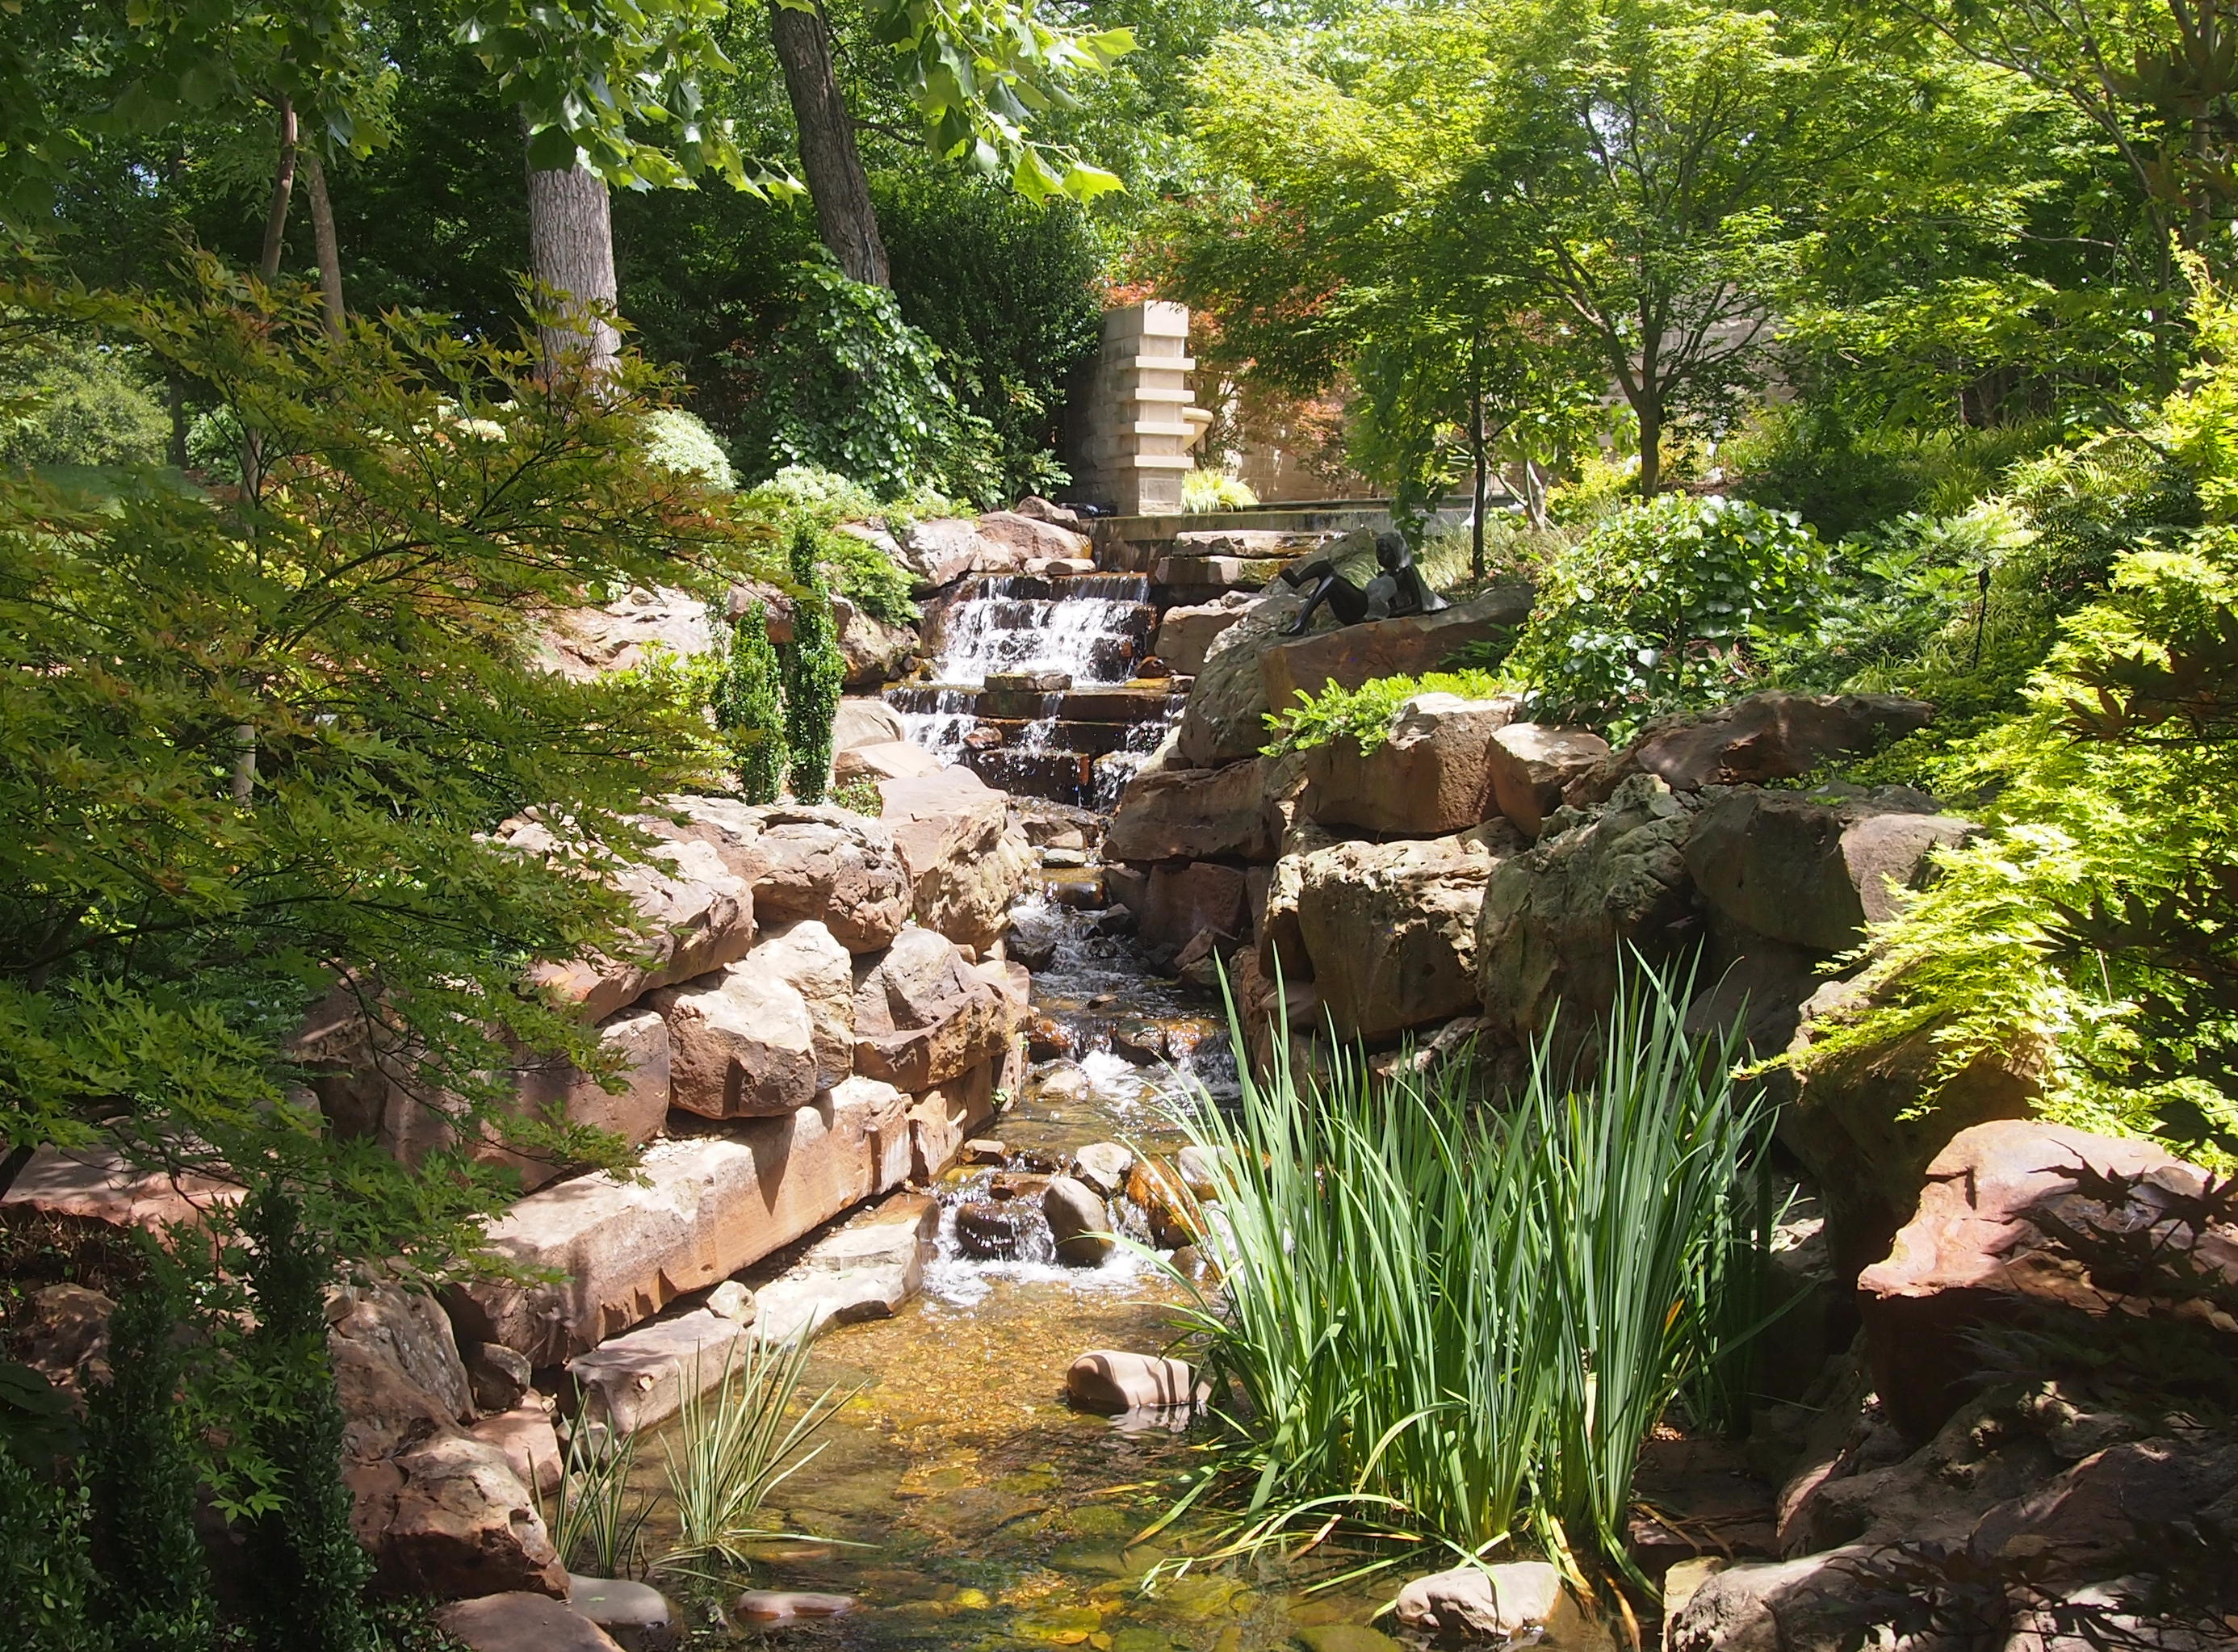 Dallas Arboretum and Botanical Garden